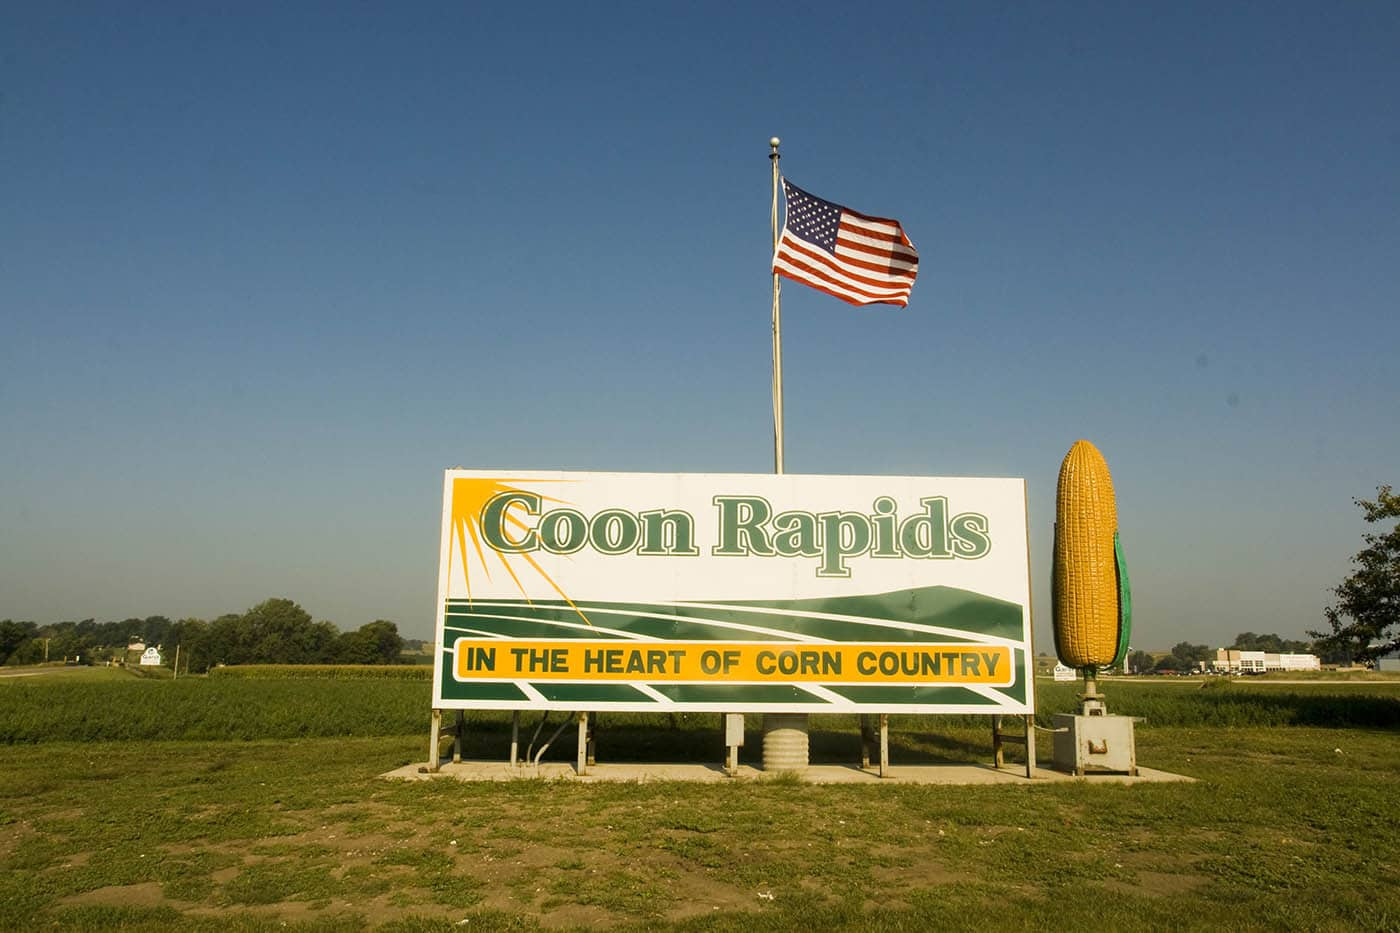 10-Foot-Tall Rotating Ear of Corn roadside attraction in Coon Rapids, Iowa. Labor Day Chicago to Mount Rushmore Road Trip.